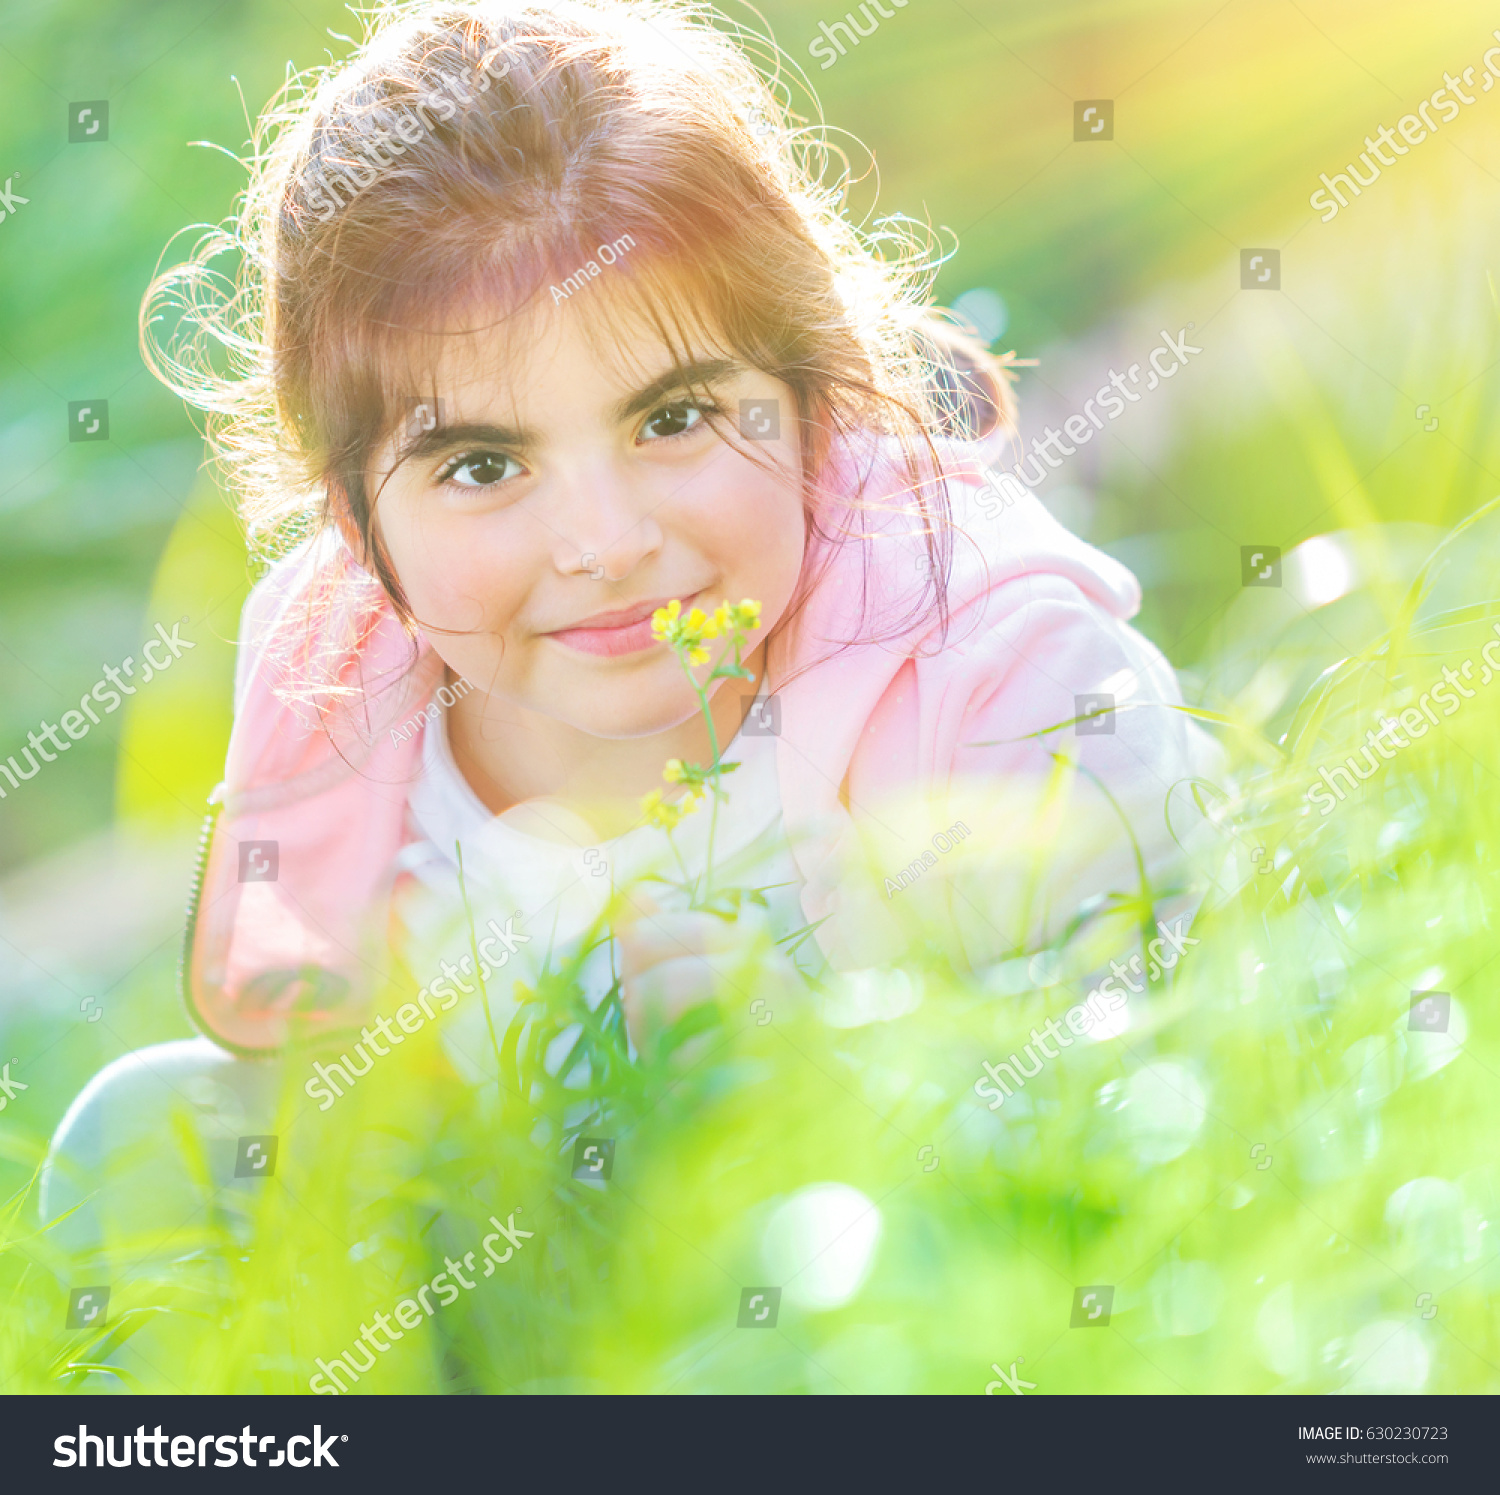 portrait cute baby girl enjoying flowers stock photo & image